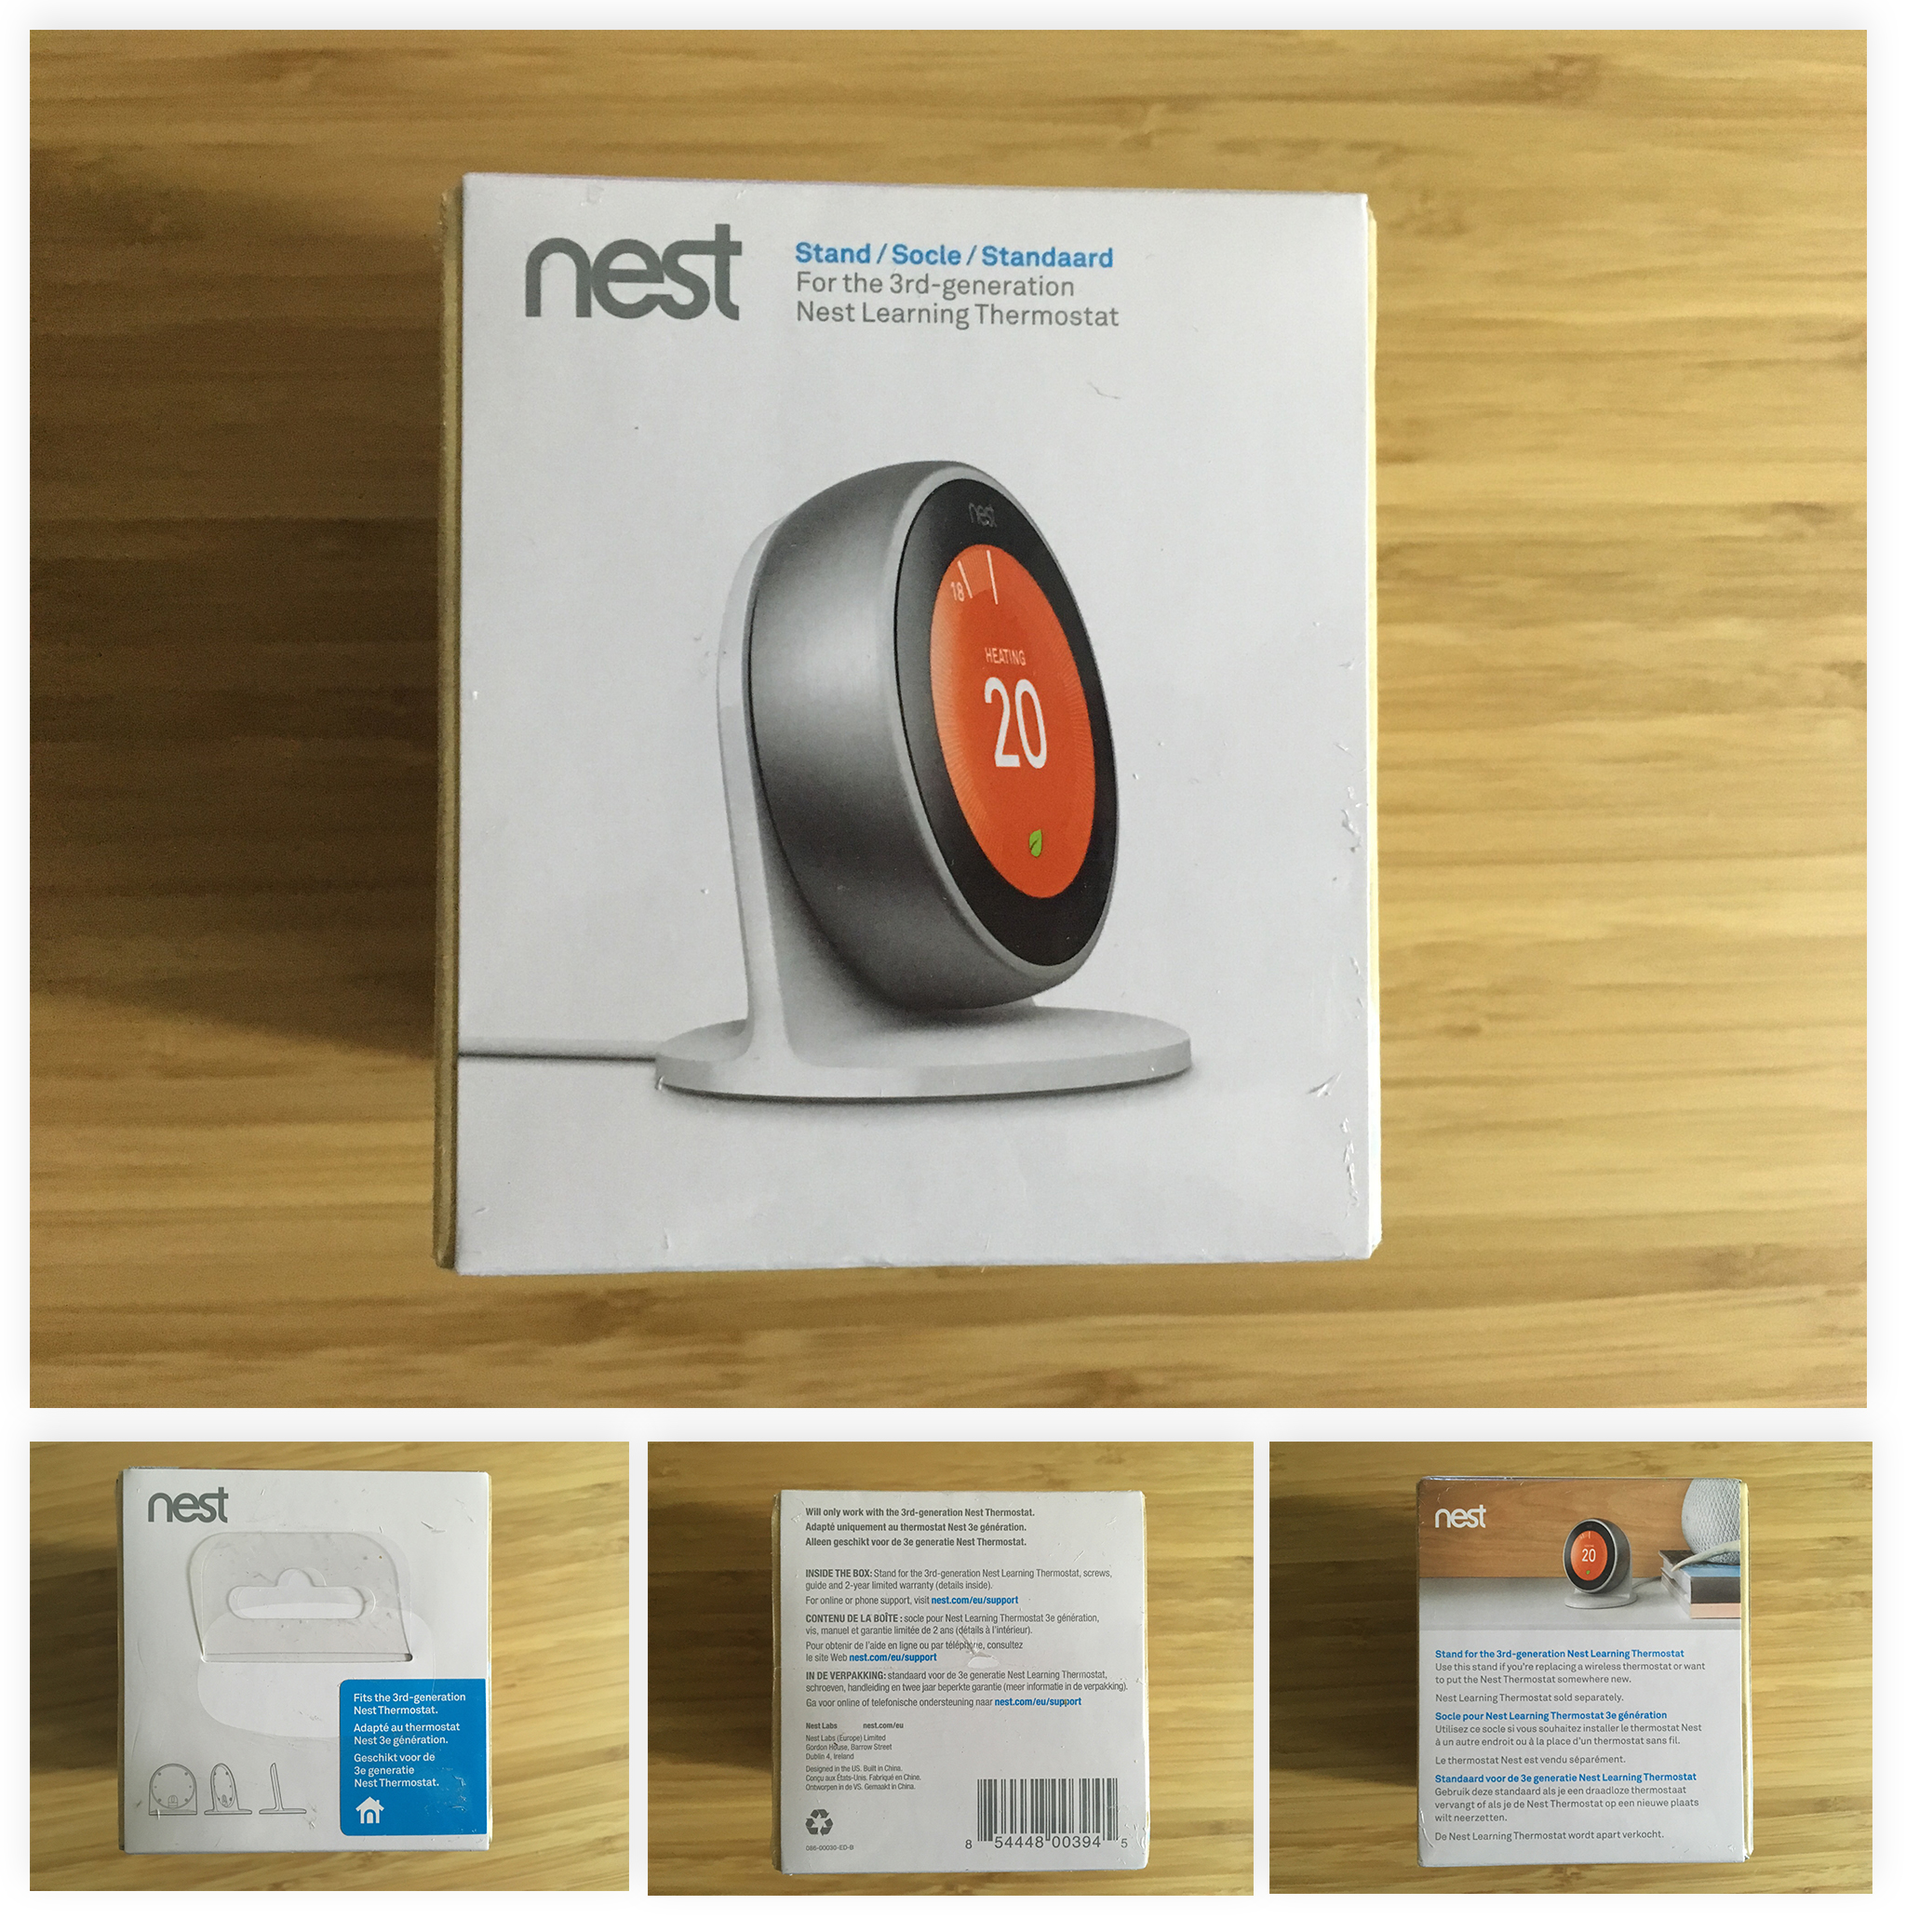 nest-holder-box-sum1